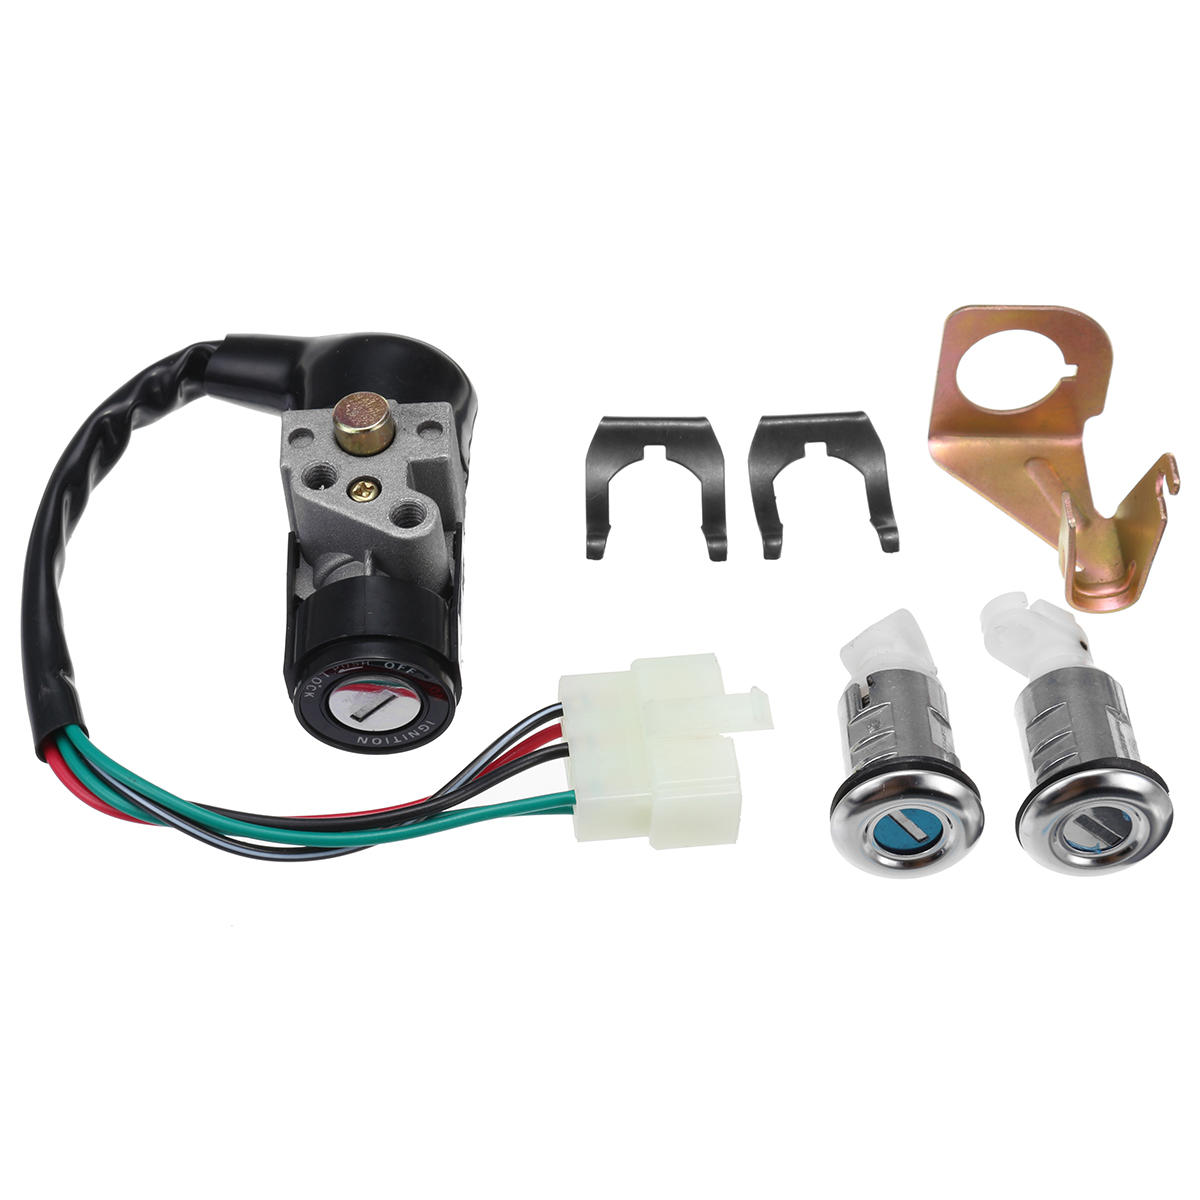 hight resolution of  scooter diagram moped ignition switch key set 5 wires for 150cc roketa jonway moped on moped